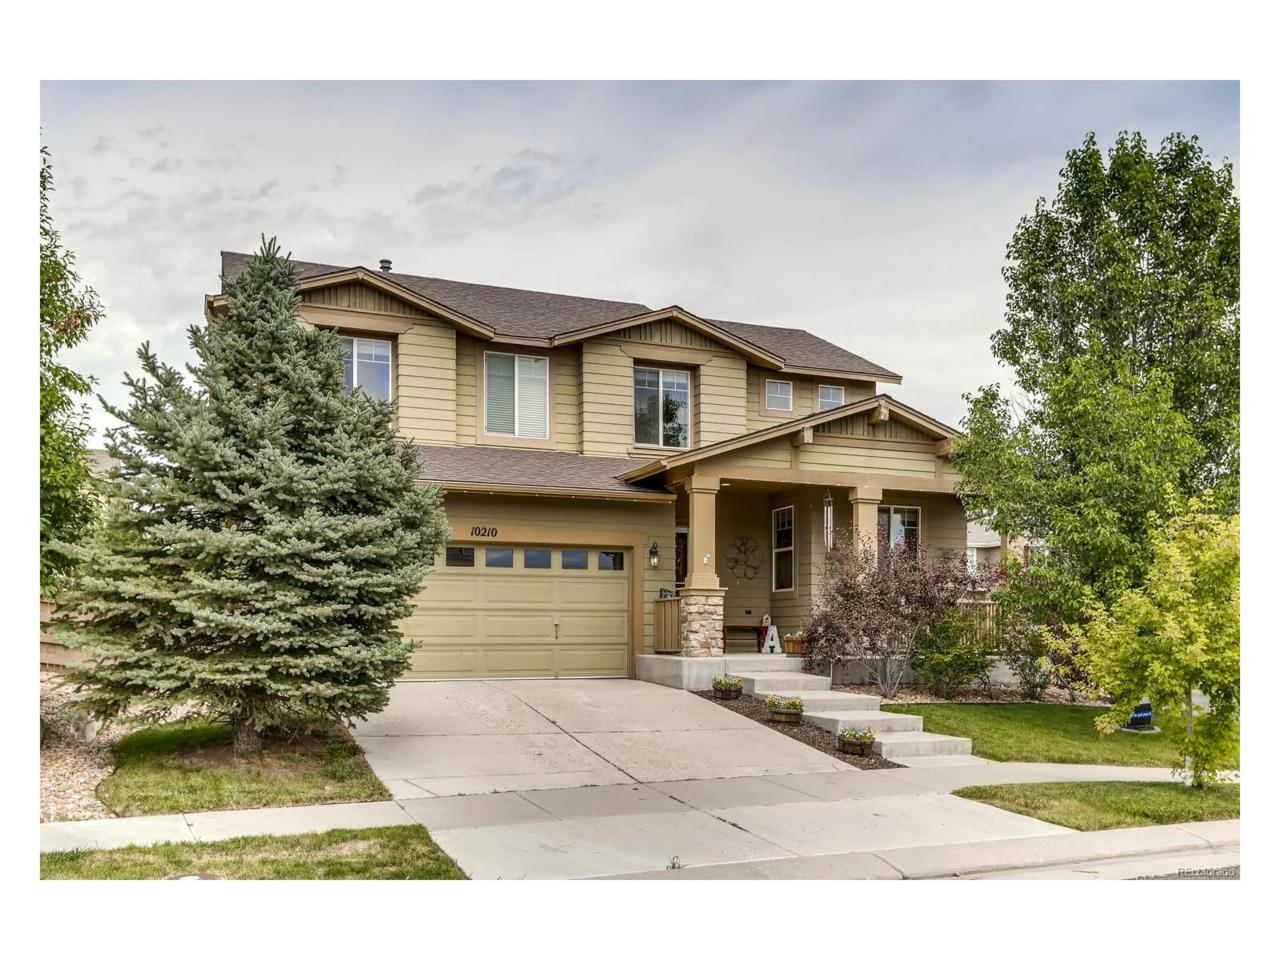 10210 Truckee Way, Commerce City, CO 80022 (MLS #1930376) :: 8z Real Estate